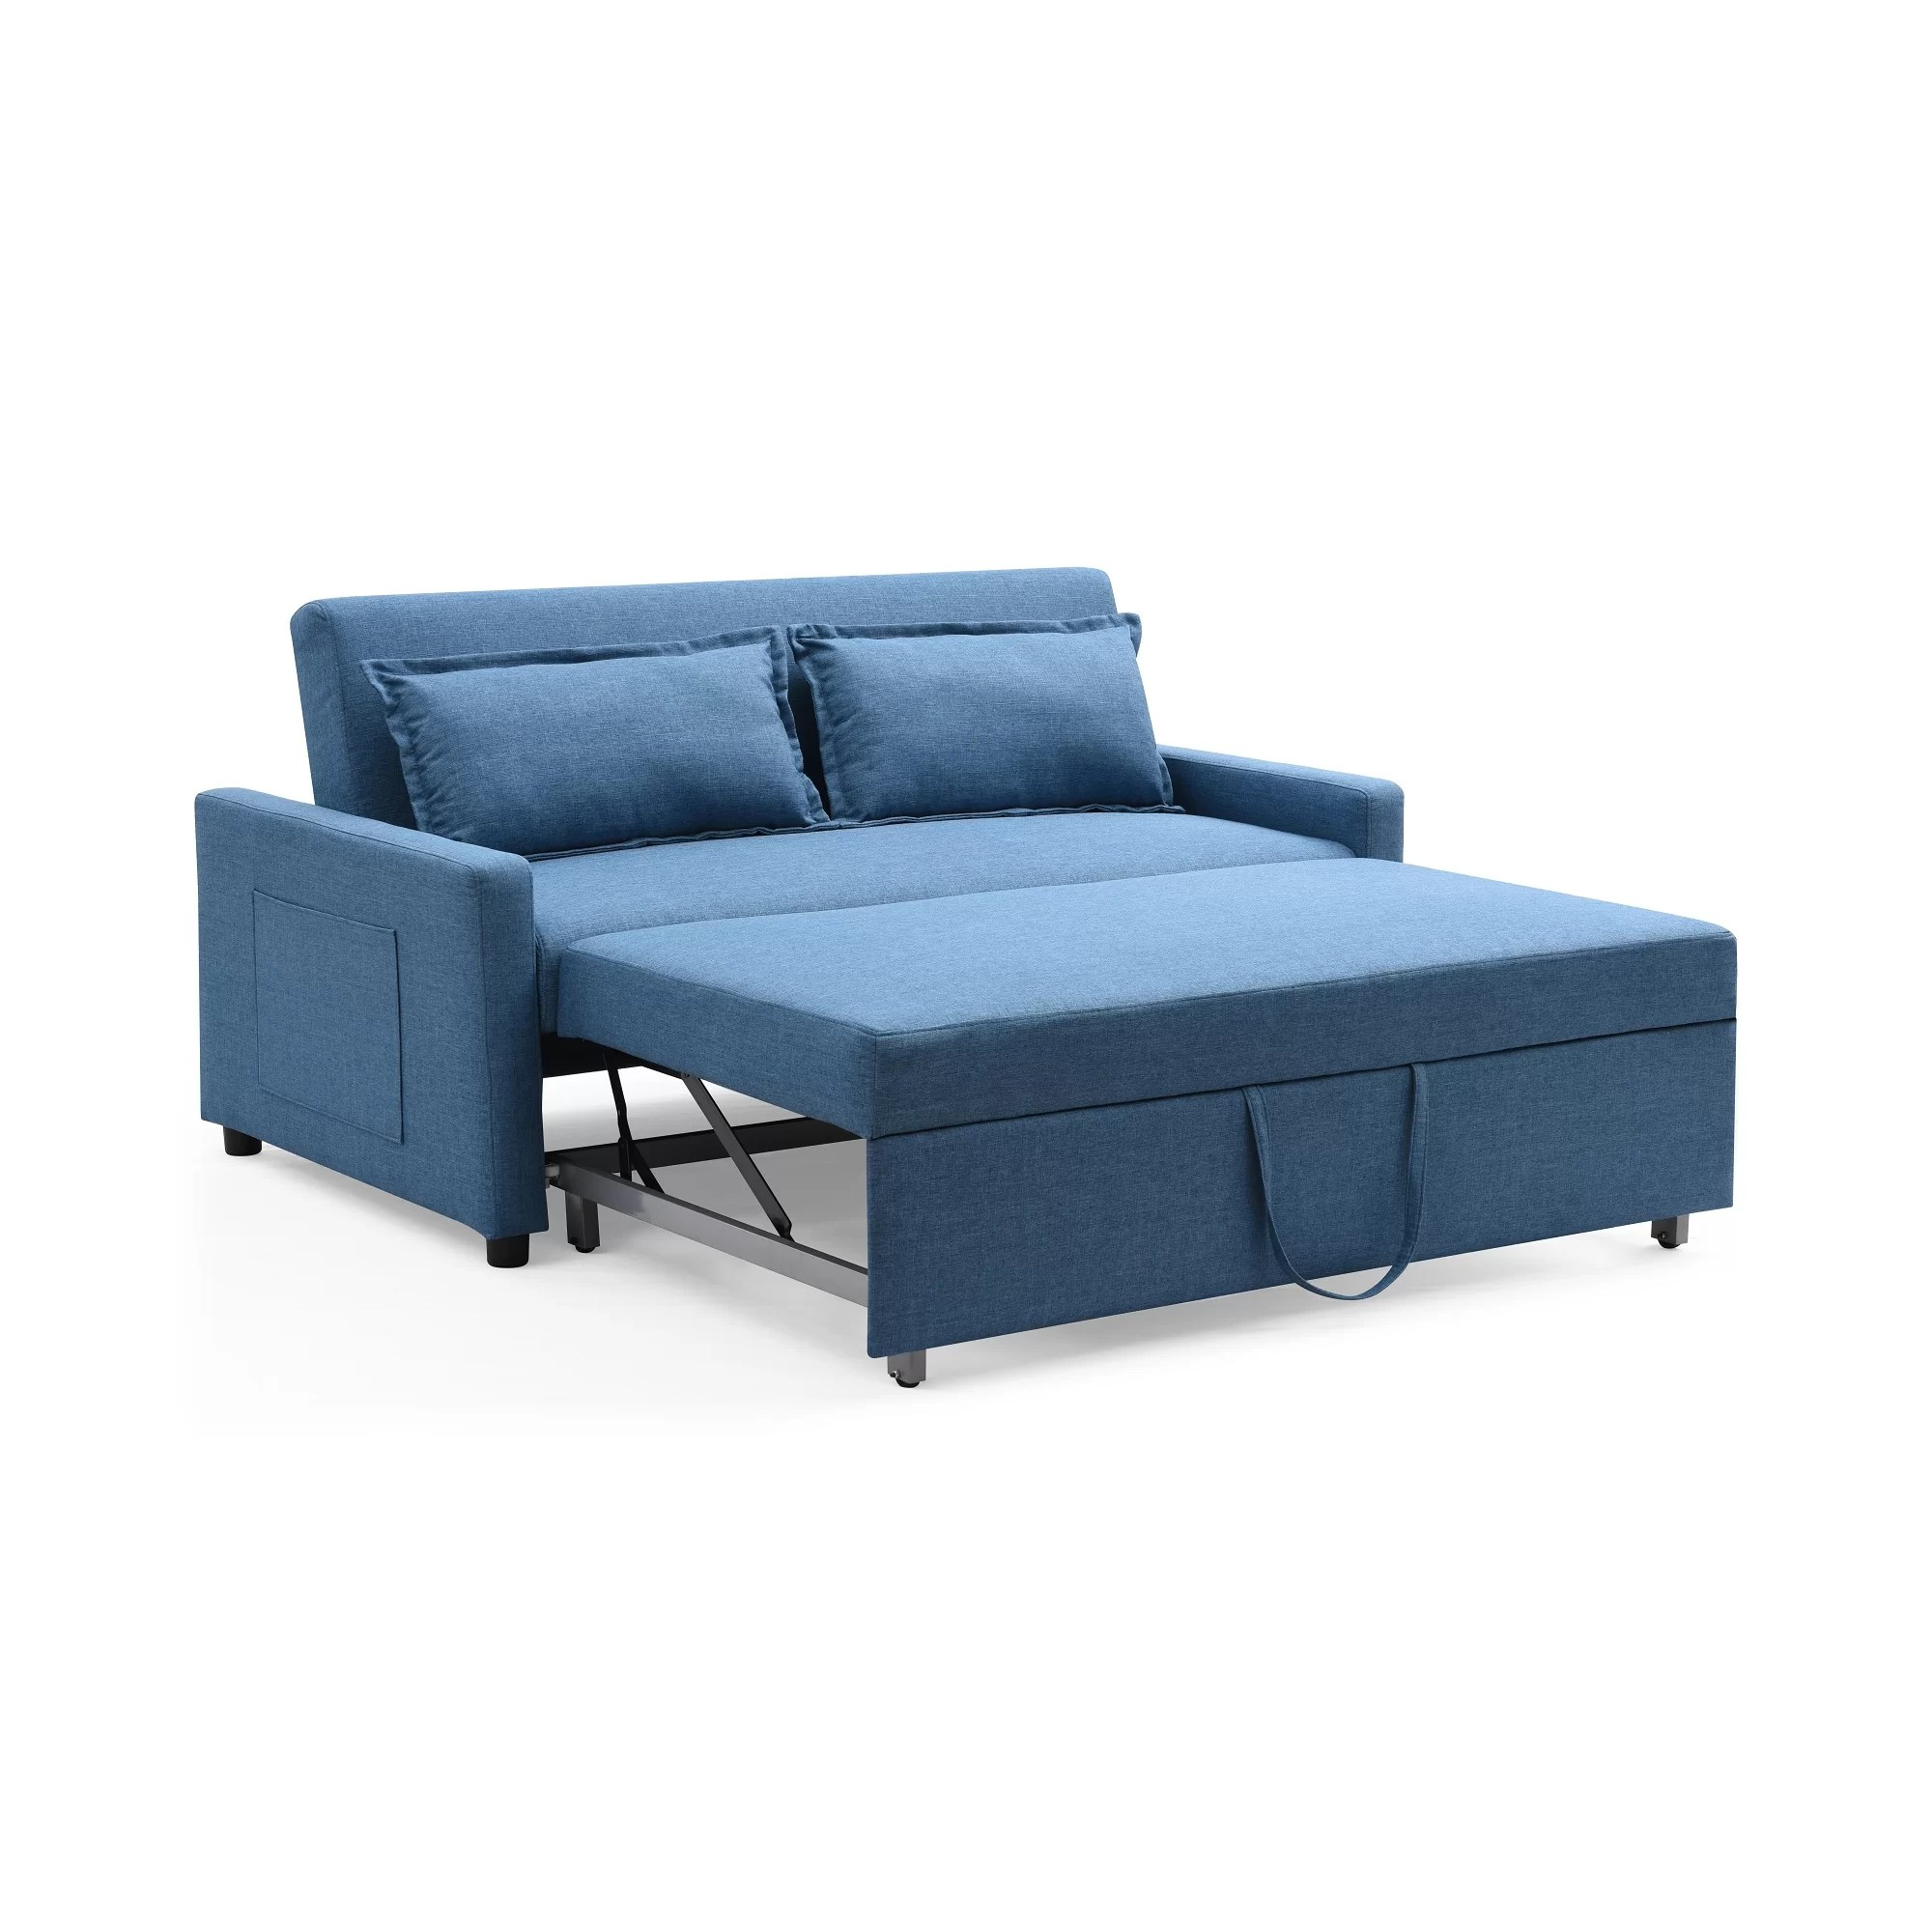 modern sleeper sofa loveseat side table slide under uk container fabric convertible and reviews